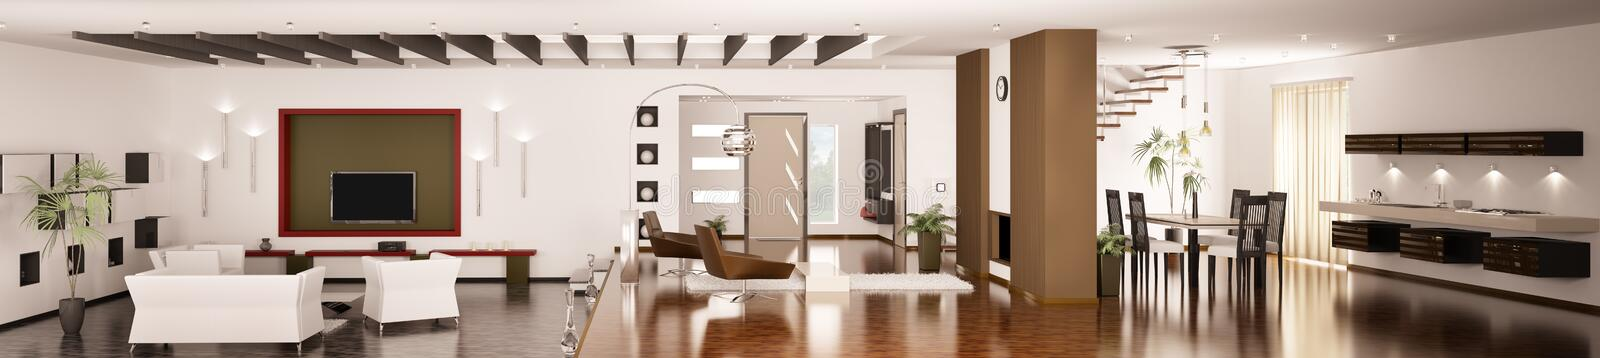 Download Interior Of Modern Apartment Panorama 3d Render Stock Illustration - Illustration: 18493992